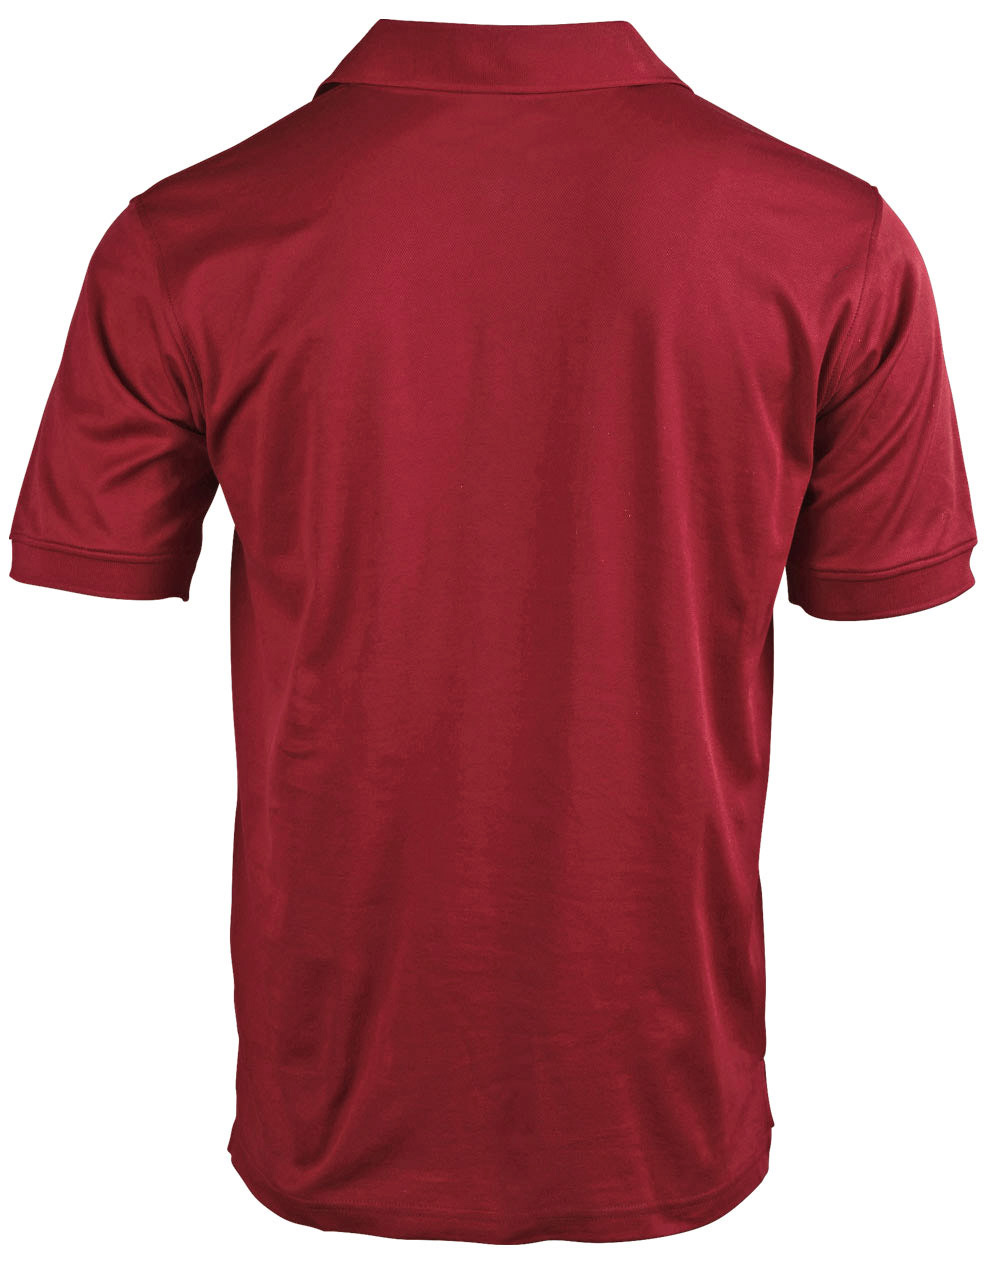 https://ws-imgs.s3-ap-southeast-1.amazonaws.com/POLOSHIRTS/PS33_Ruby_Back.jpg